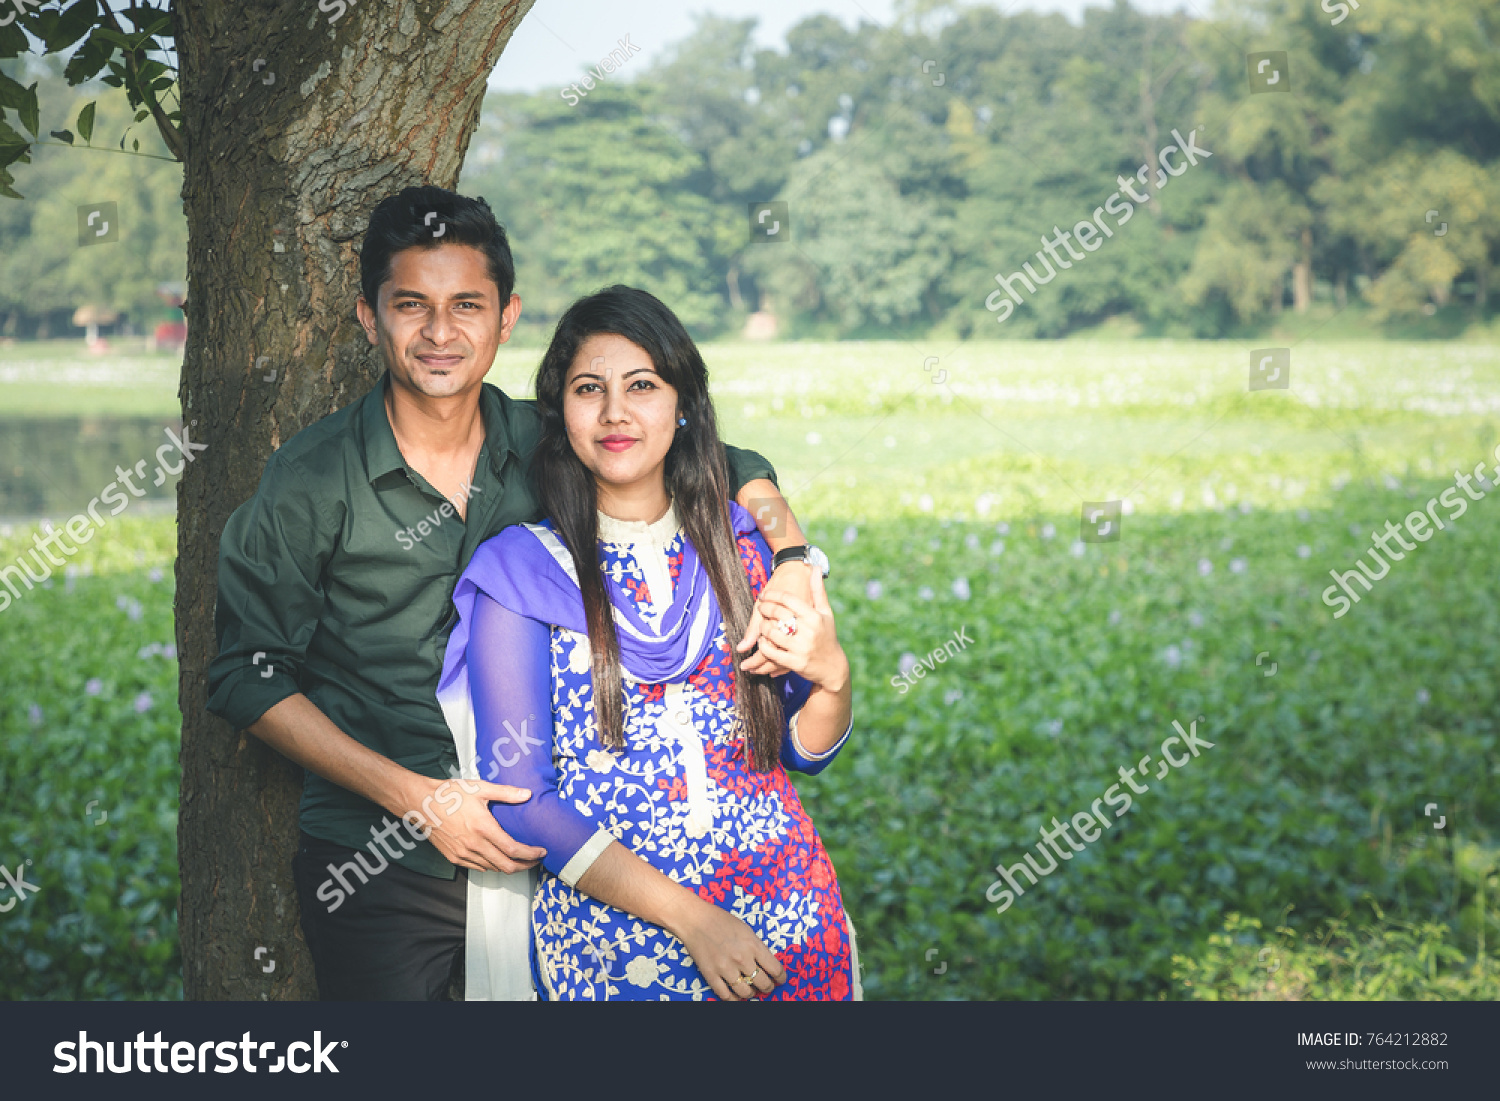 Dhaka bangladesh november 25 2017 a young newly married couple from india